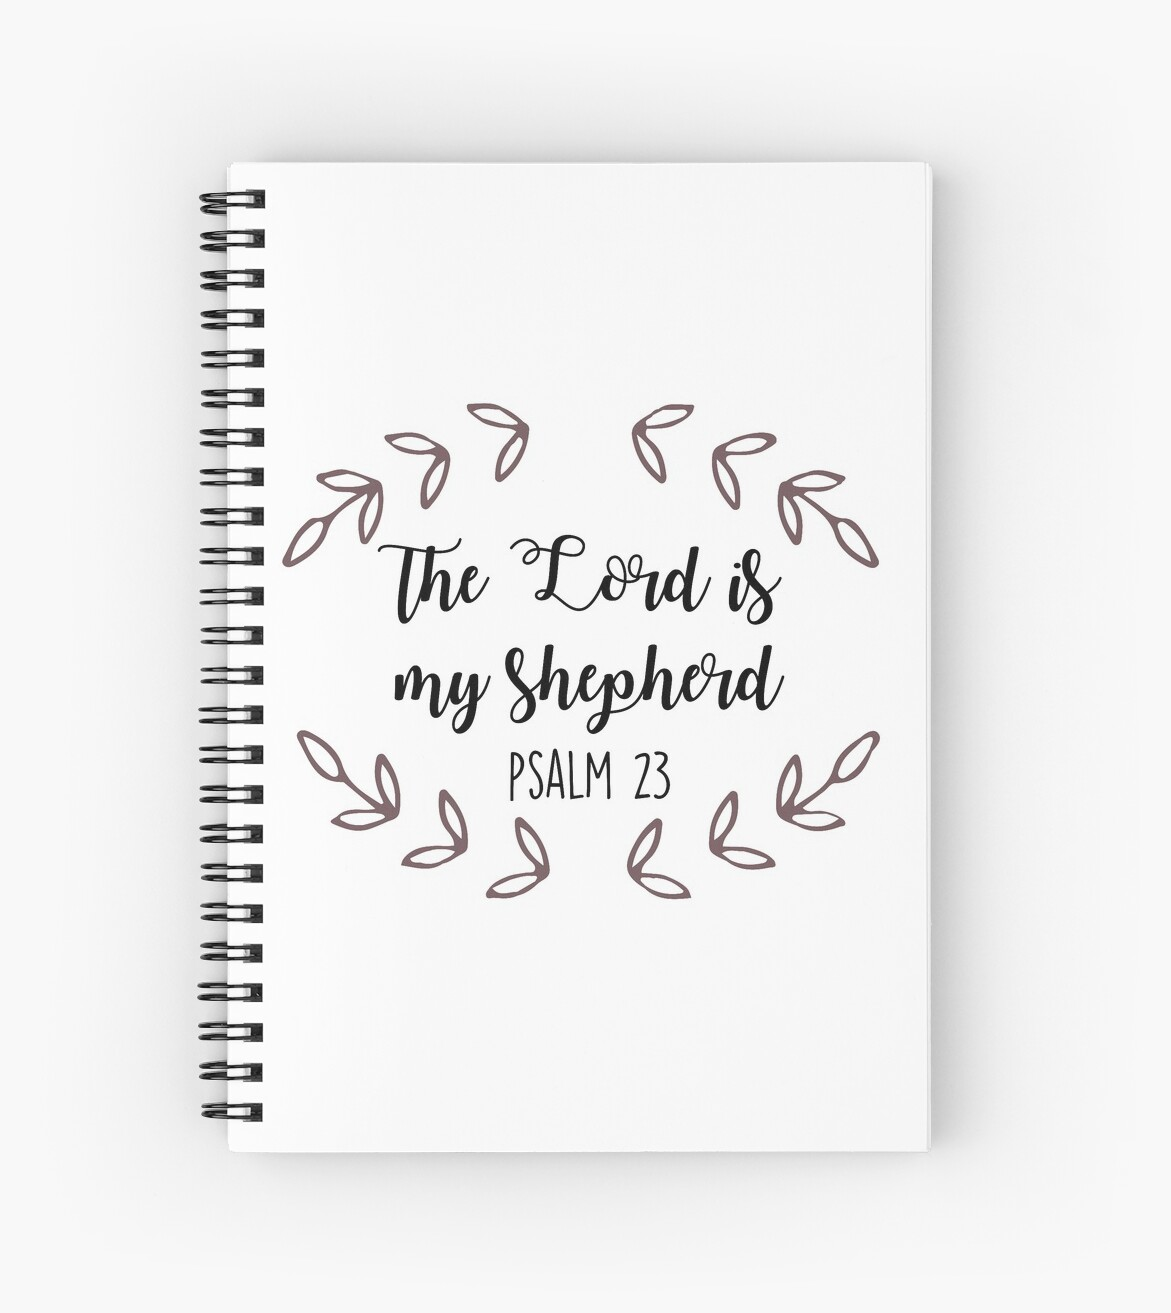 Psalm 23 The Lord Is My Shepherd Spiral Notebook By Kalongraphics Redbubble